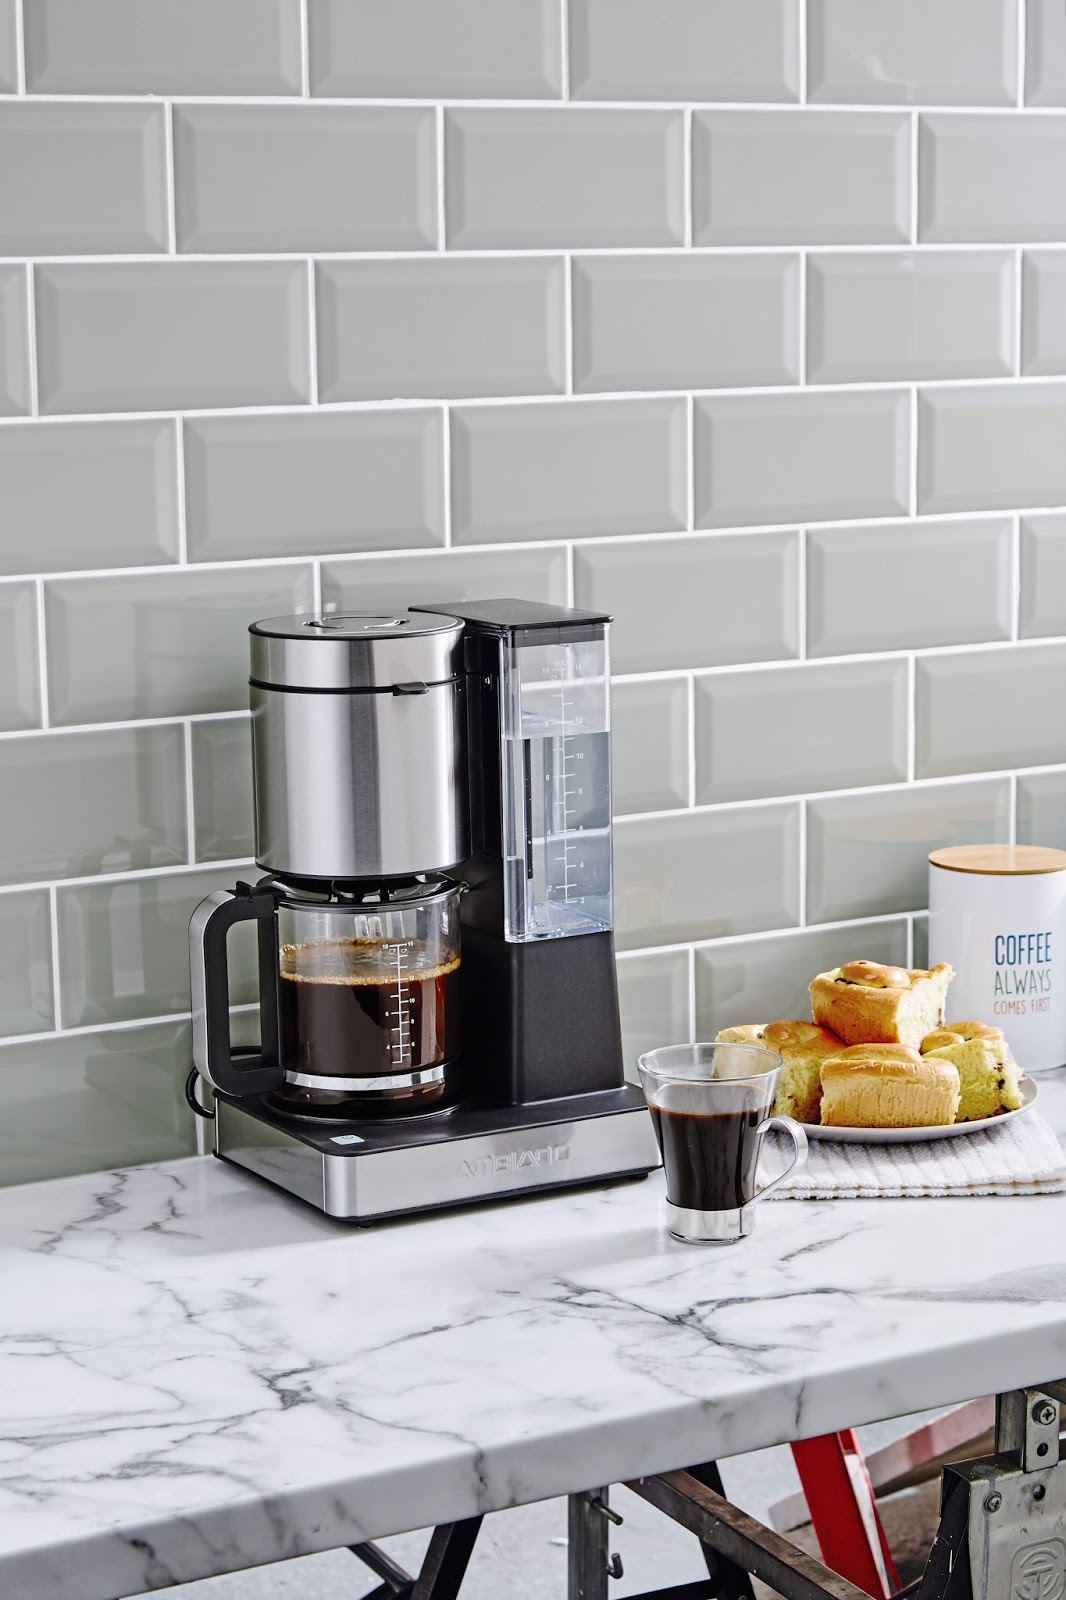 Aldi Filter Coffee Machine